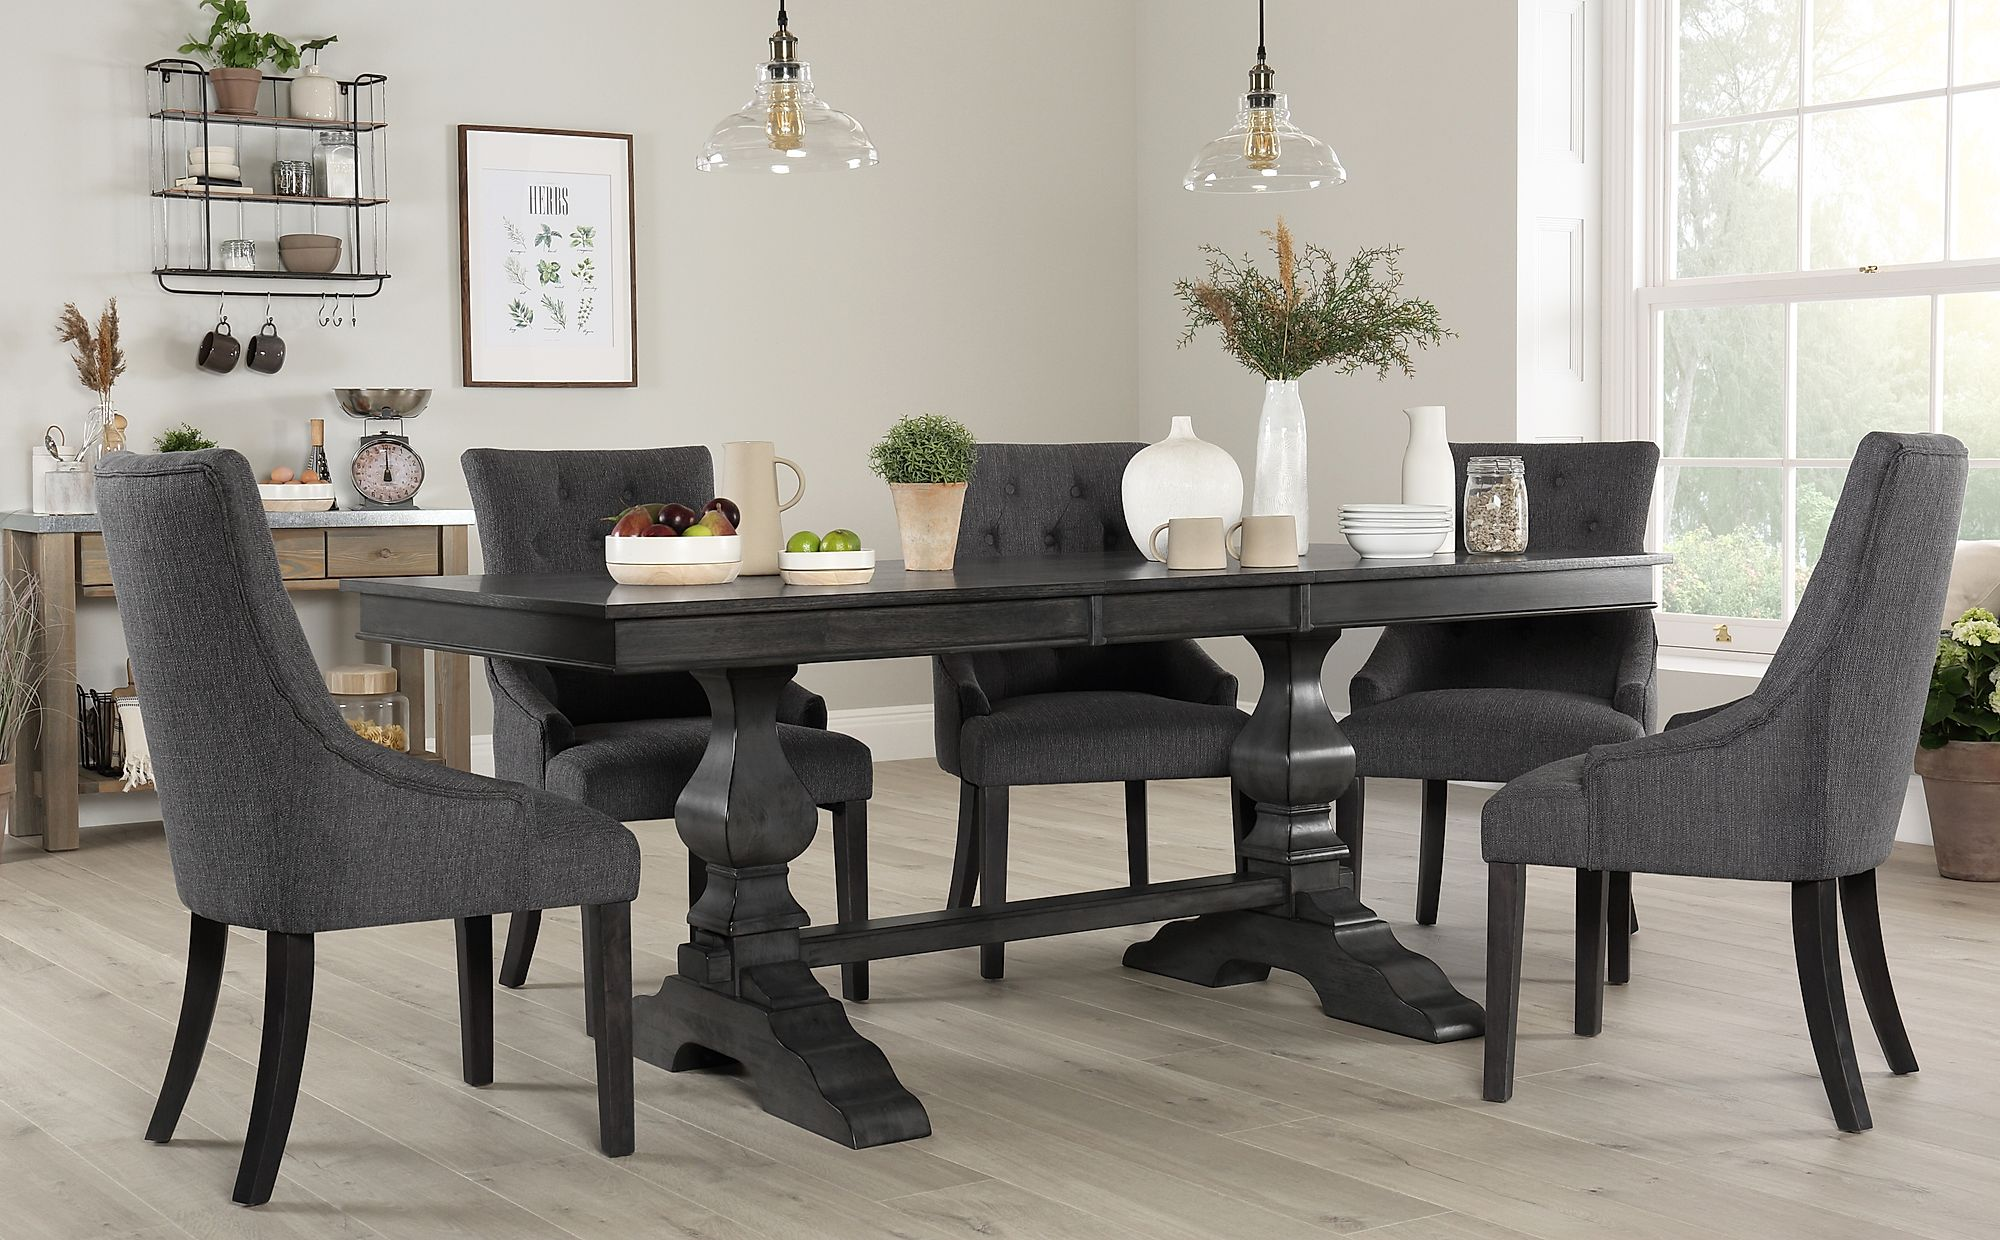 Cavendish Grey Wood Extending Dining Table with 4 Duke ...